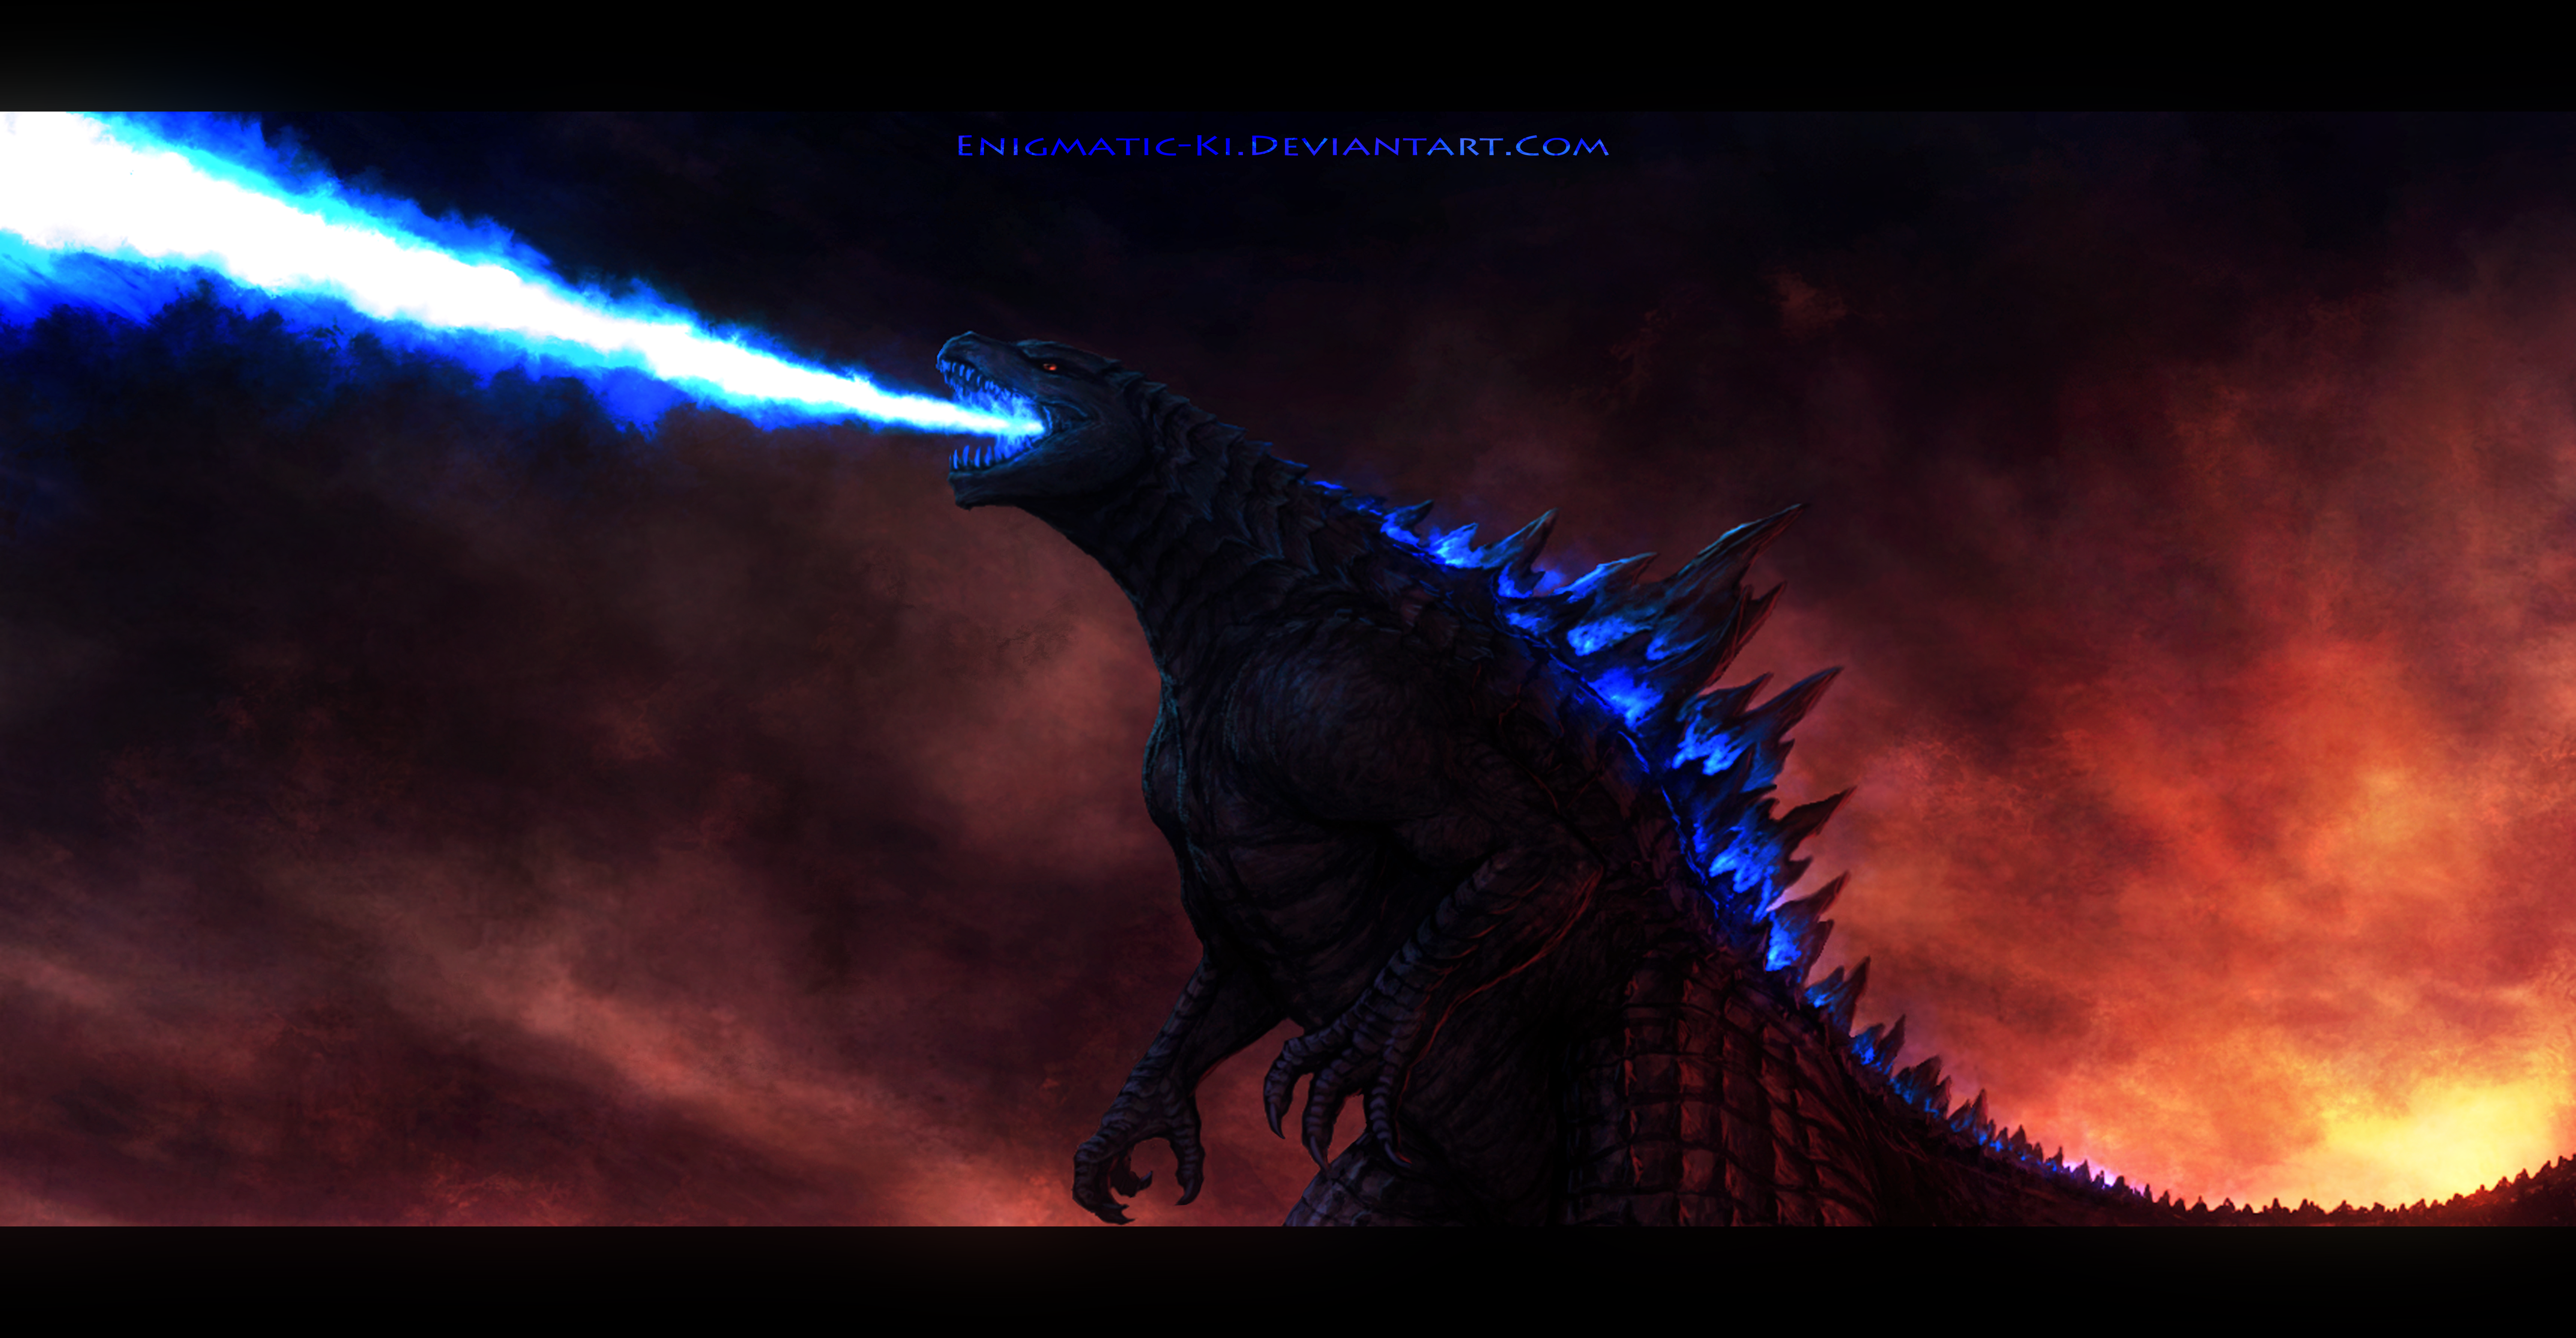 King of the Monsters by Enigmatic-Ki on DeviantArt